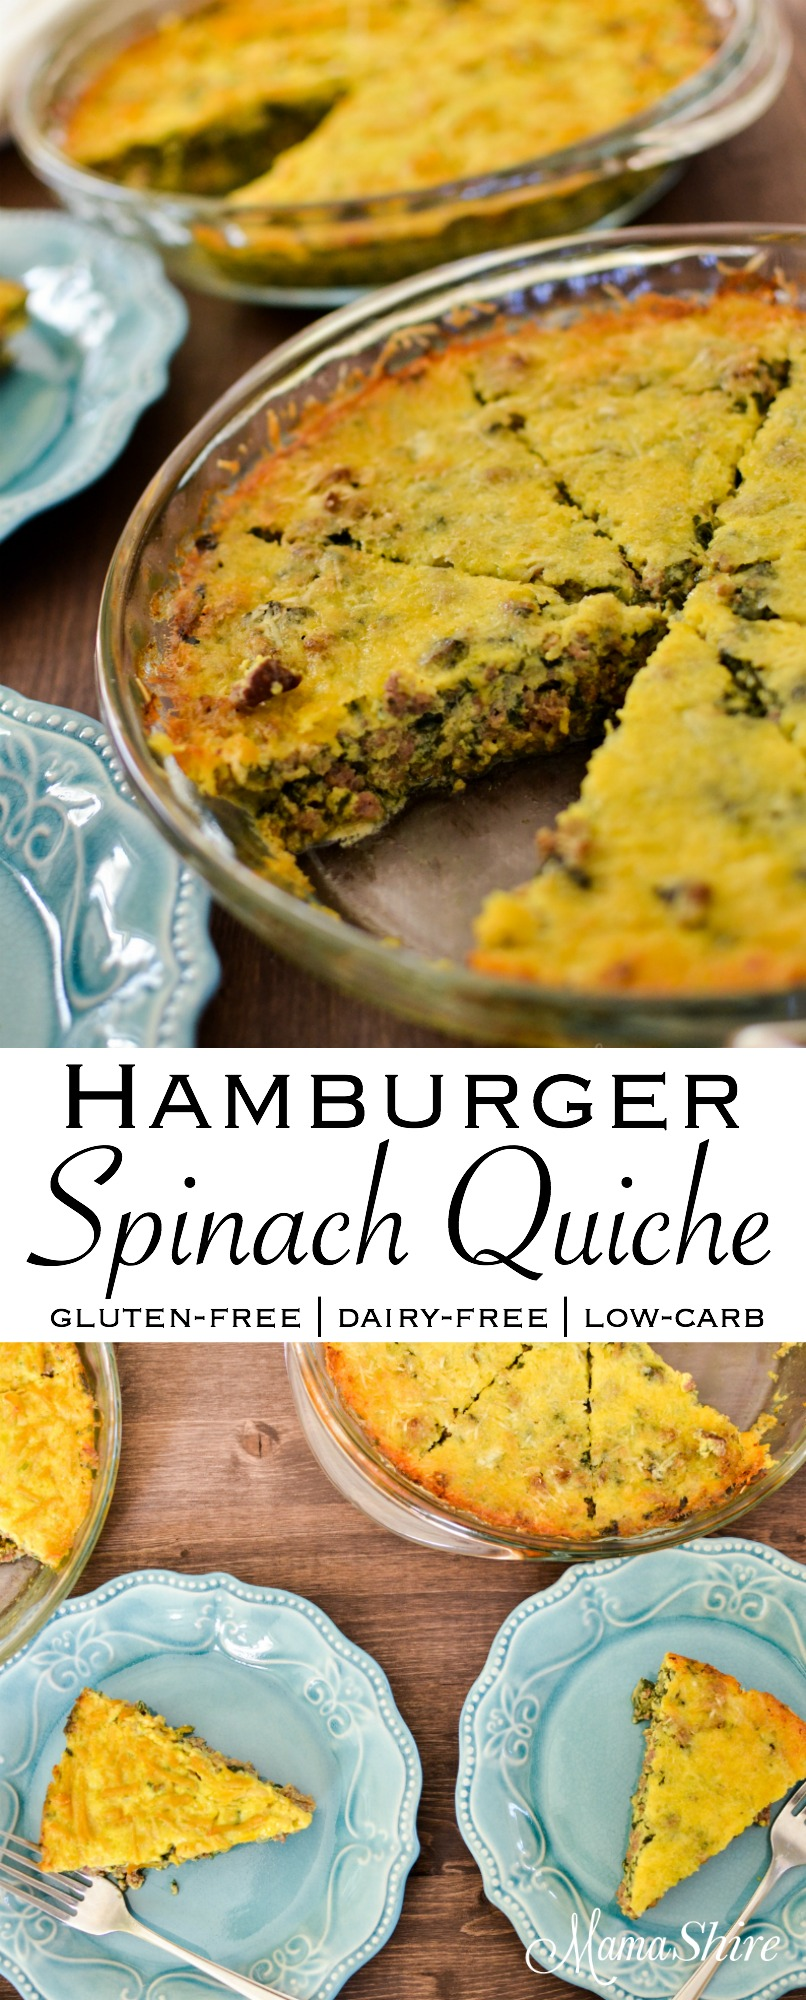 Hamburger Spinach Quiche Gluten-free, Dairy-free, Low Carb, THM-S